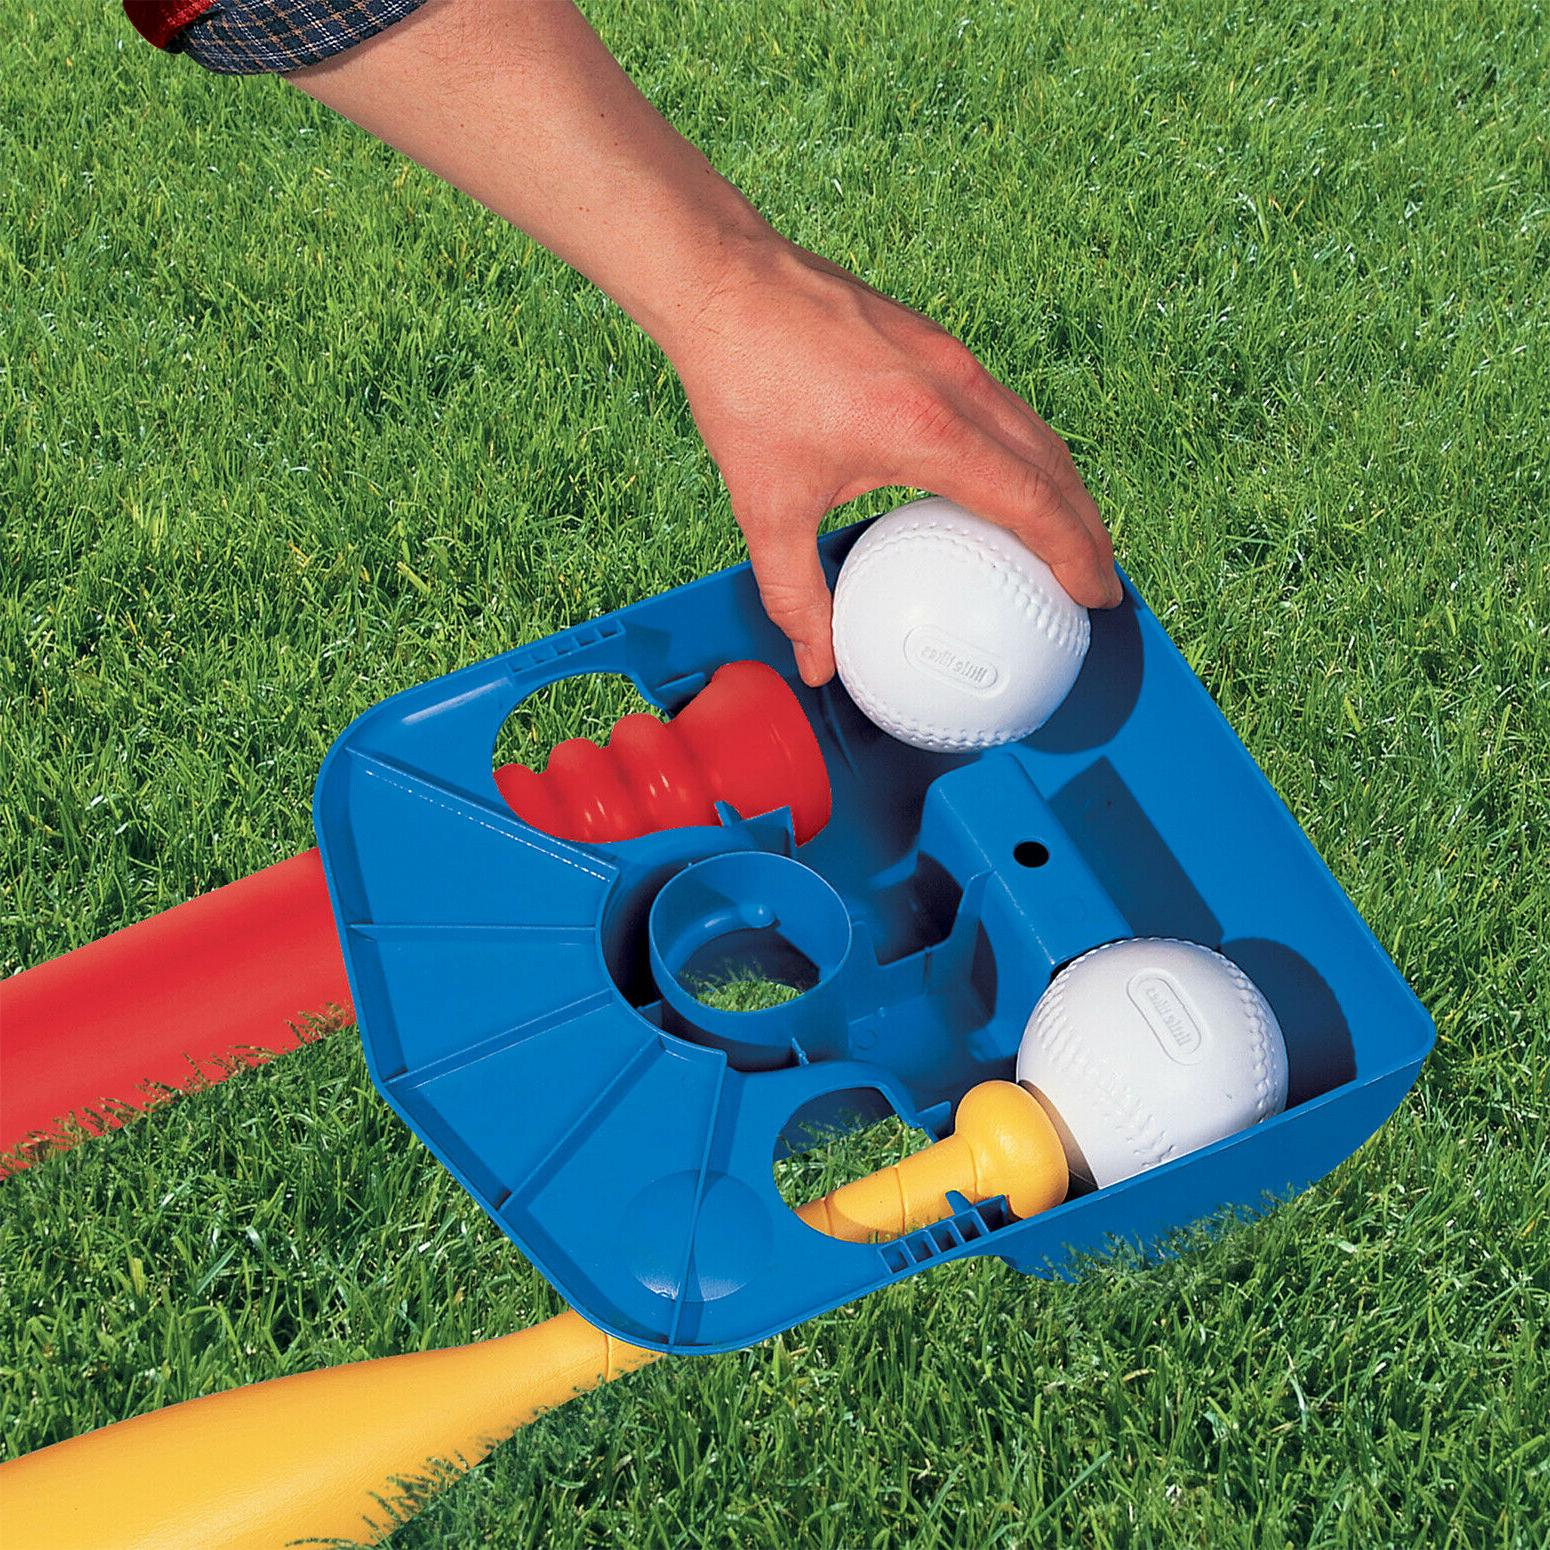 T-Ball Set Little Toys 2 Ball Tee Game Funny Play